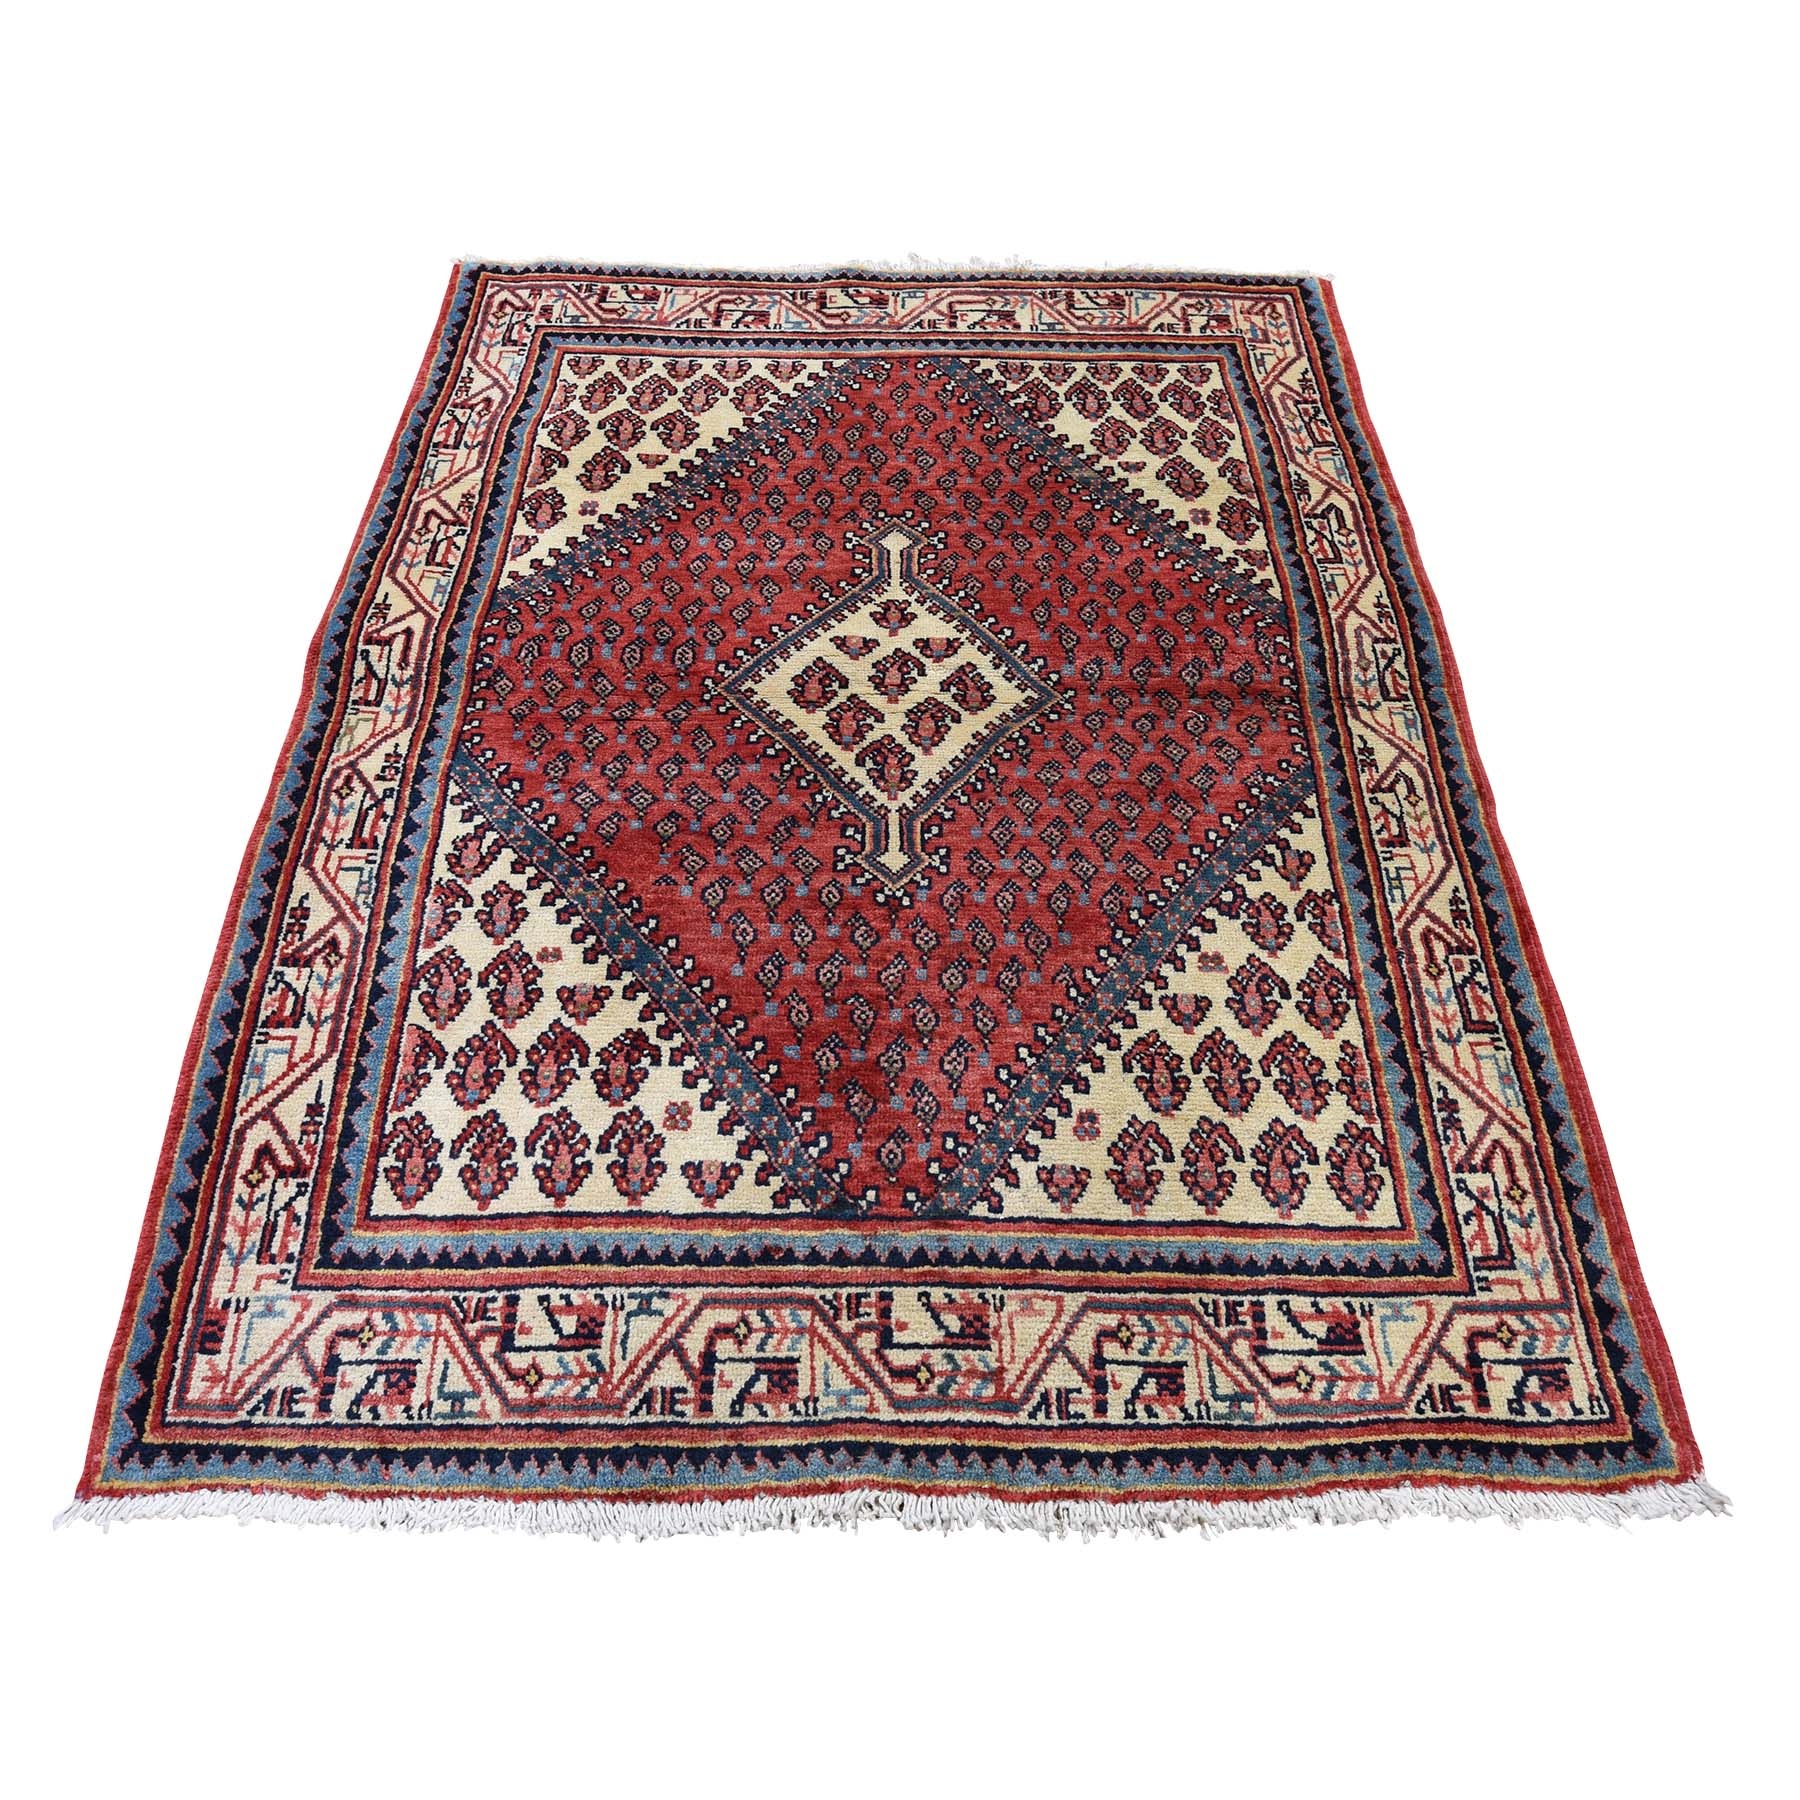 """3'7""""X5'2"""" Vintage Persian Sarouk Mir Pure Wool Hand-Knotted Oriental Rug moadd66d"""